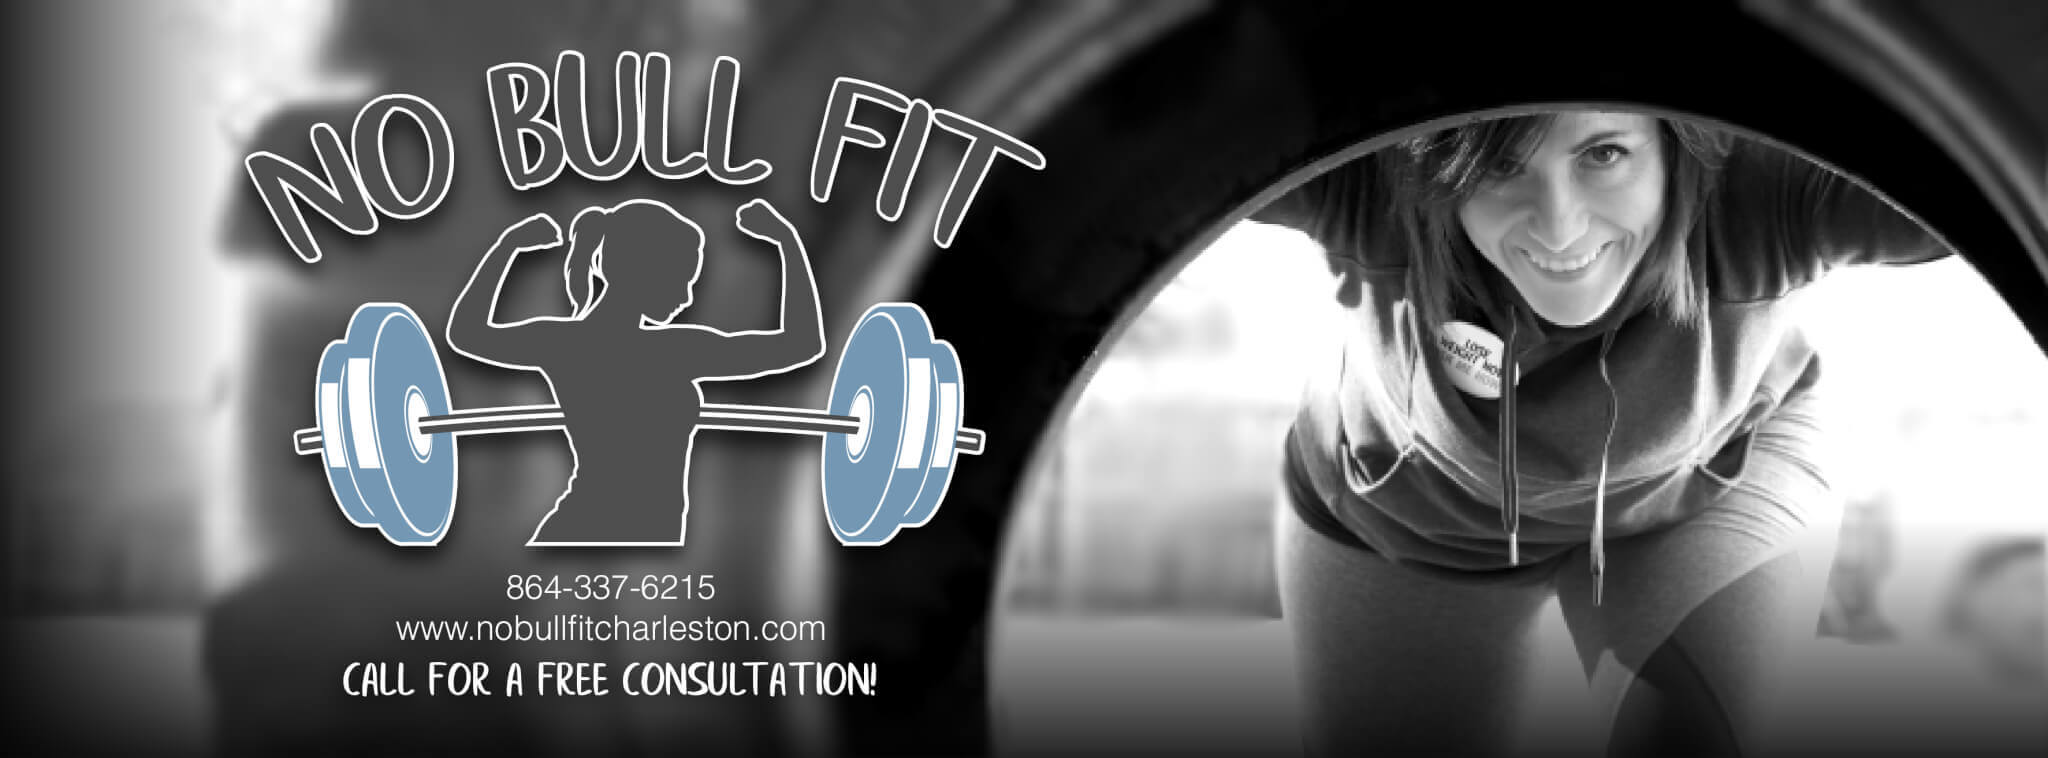 marketing, branding, social media, websites, design, media, graphics, no bull fit, personal trainer